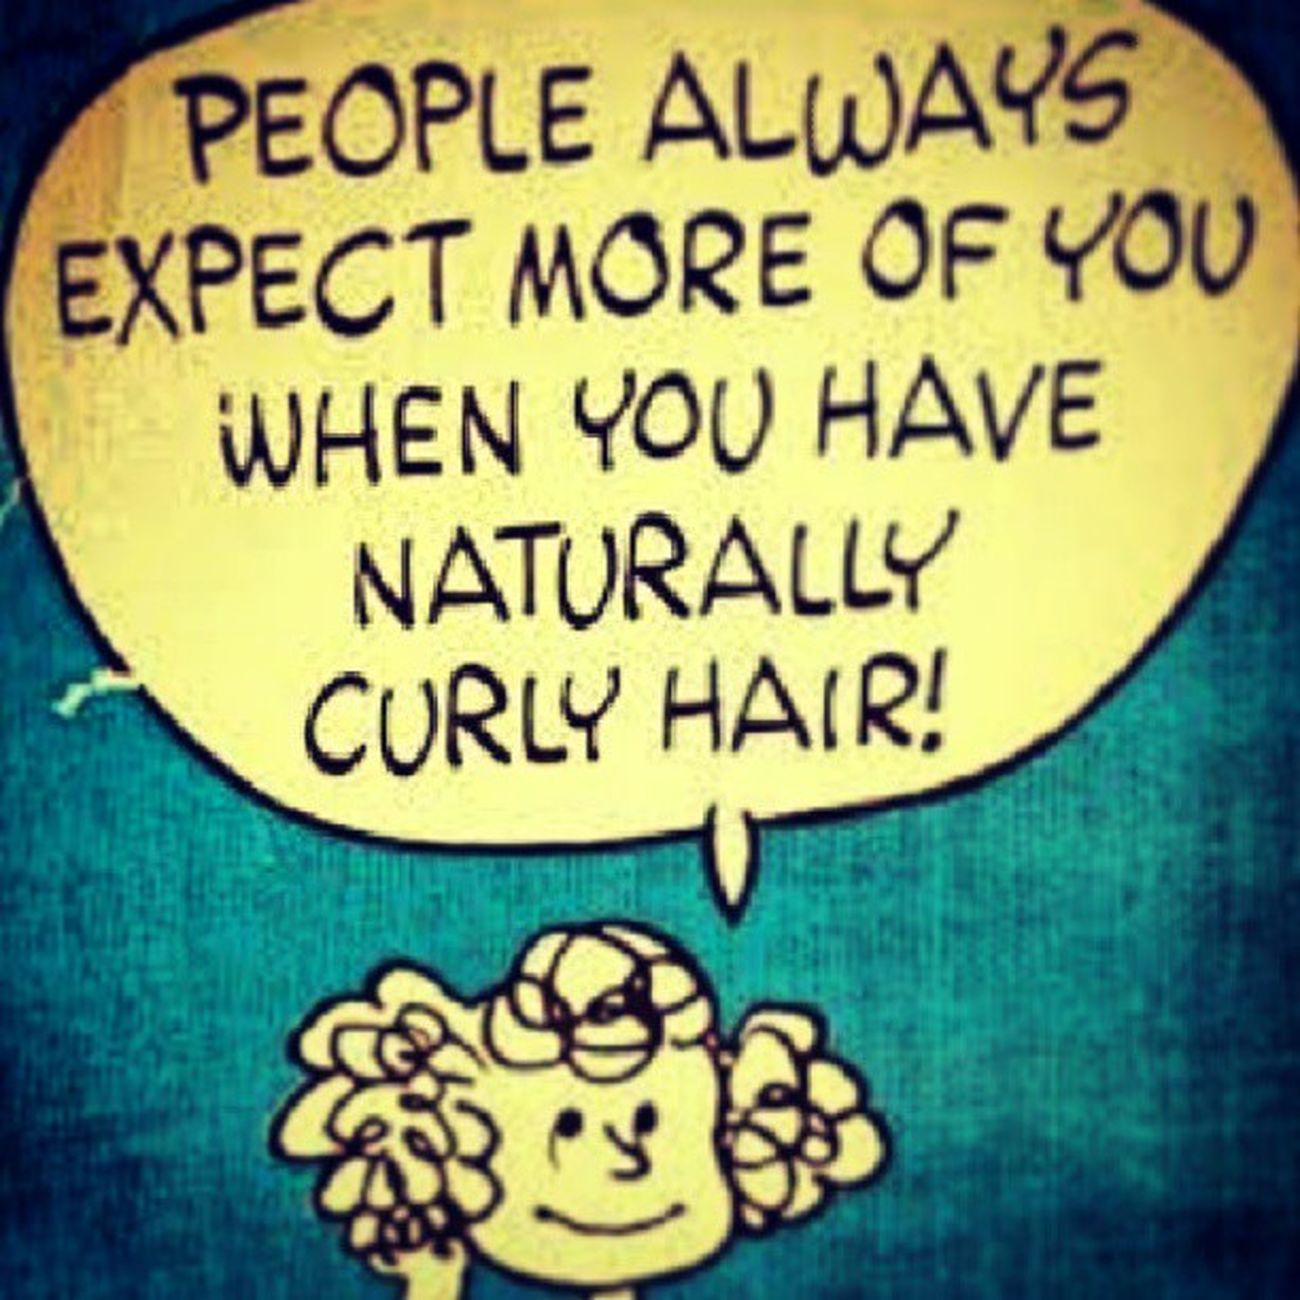 Ah, this explains my ambition! :) @safiag1 @chats0lot @mrskrizrollins So cute! Devacurl Curlworld Curlygirlandproud